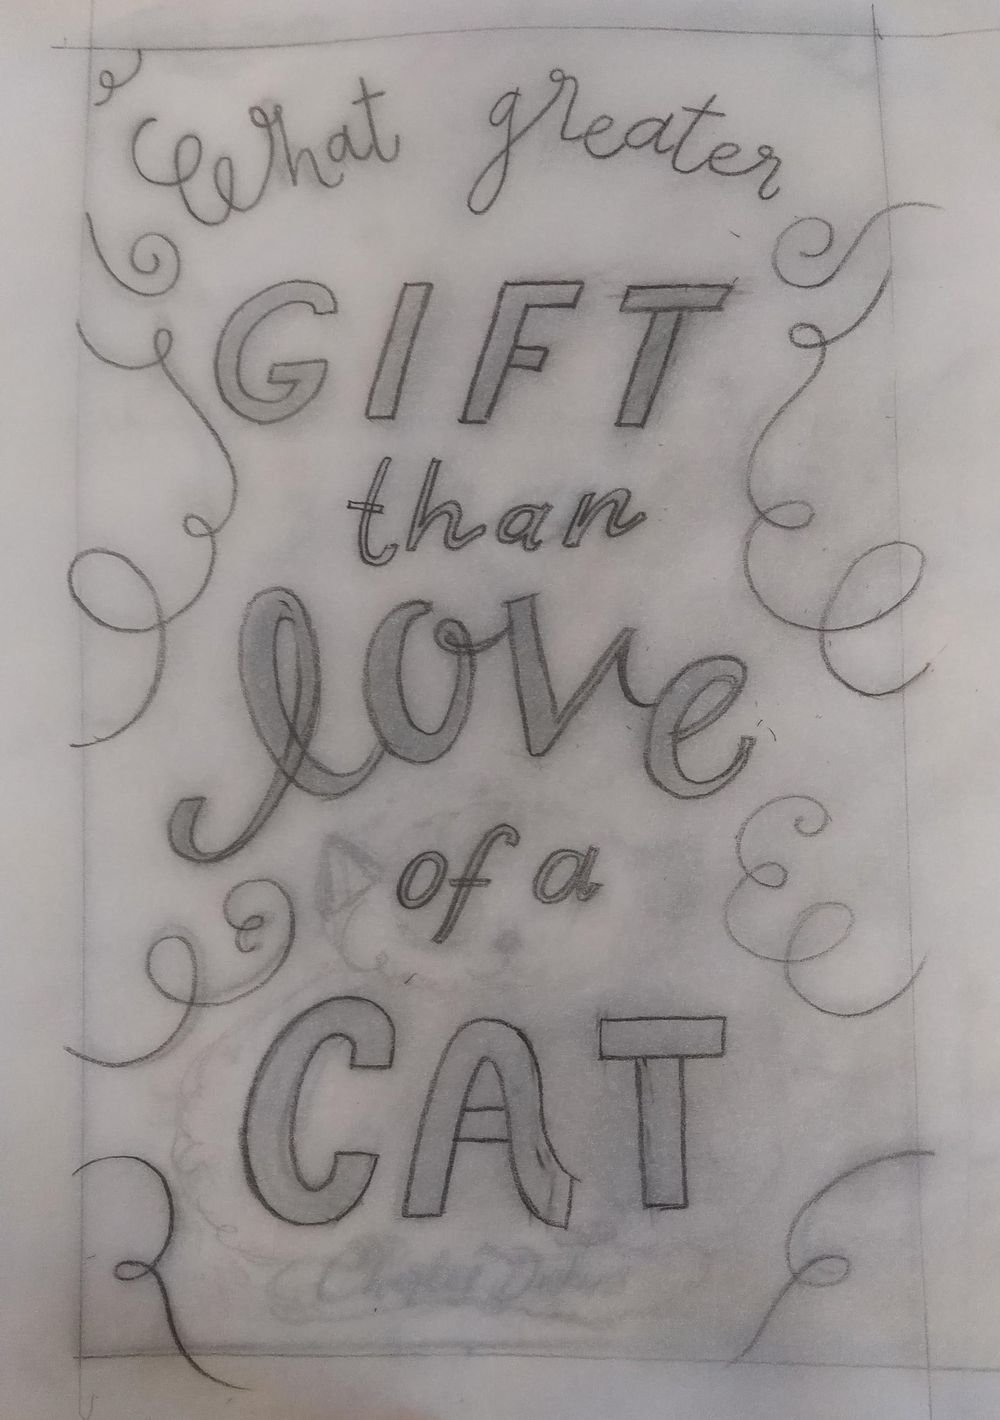 What greater gift than... - image 7 - student project